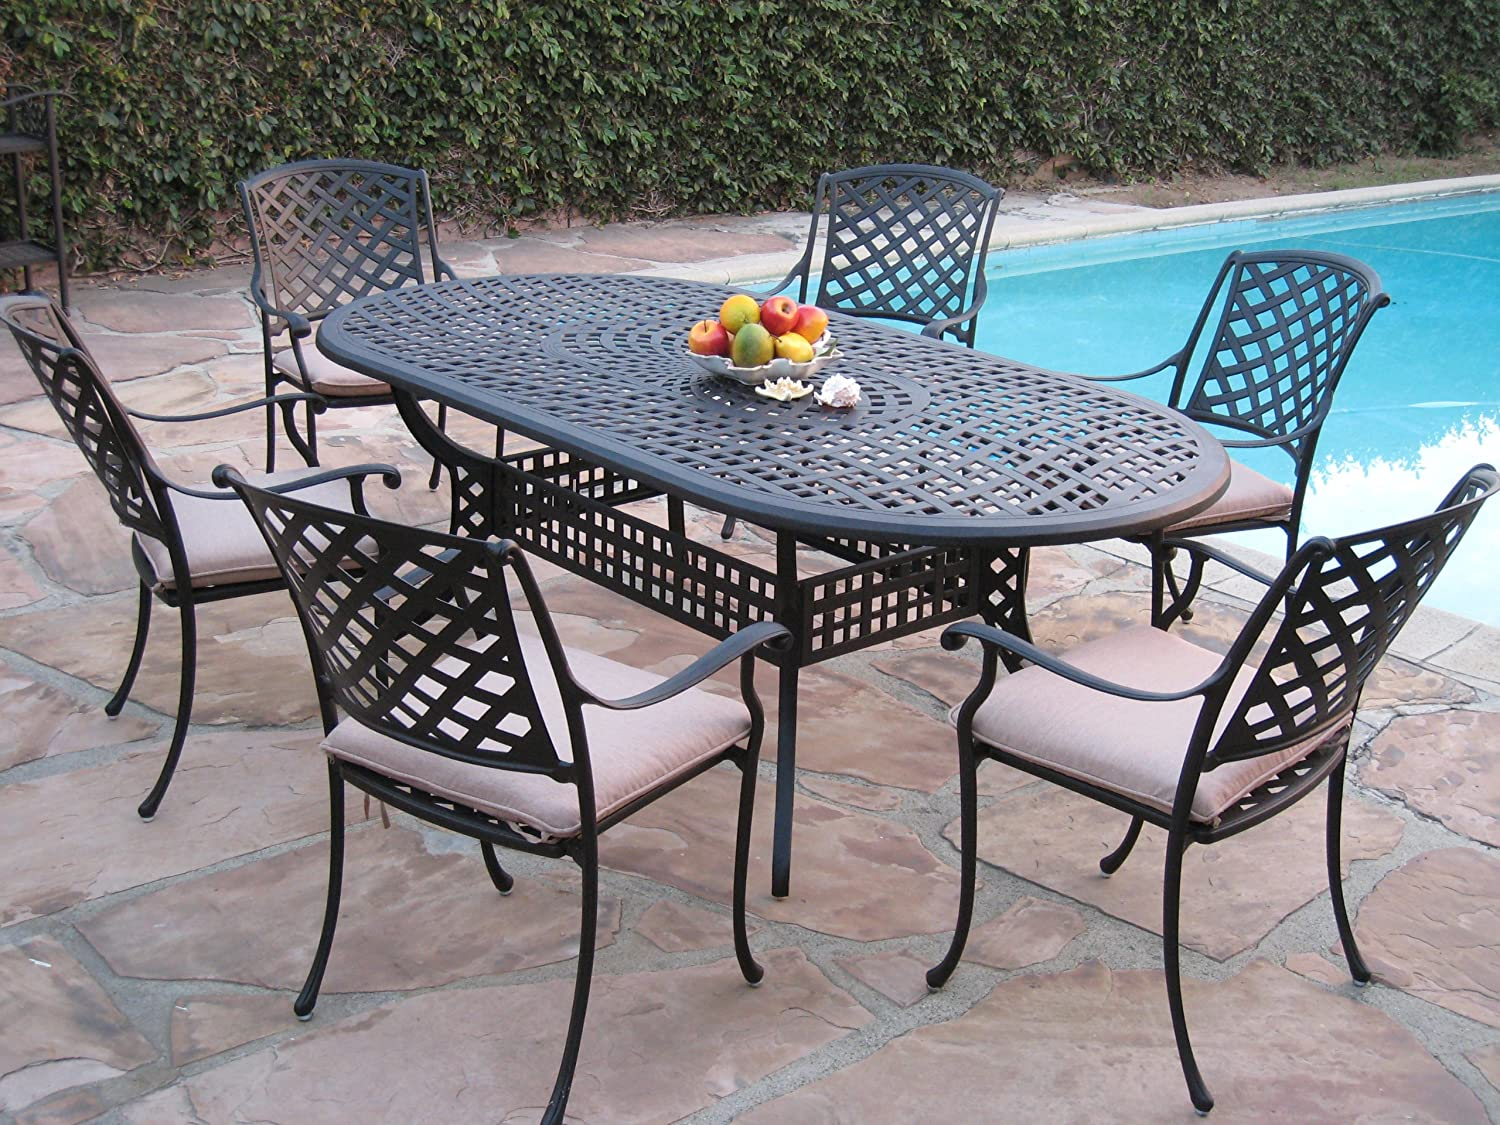 Kawaii Collection Outdoor Cast Aluminum Patio Furniture 7 Piece Dining Set MLV42